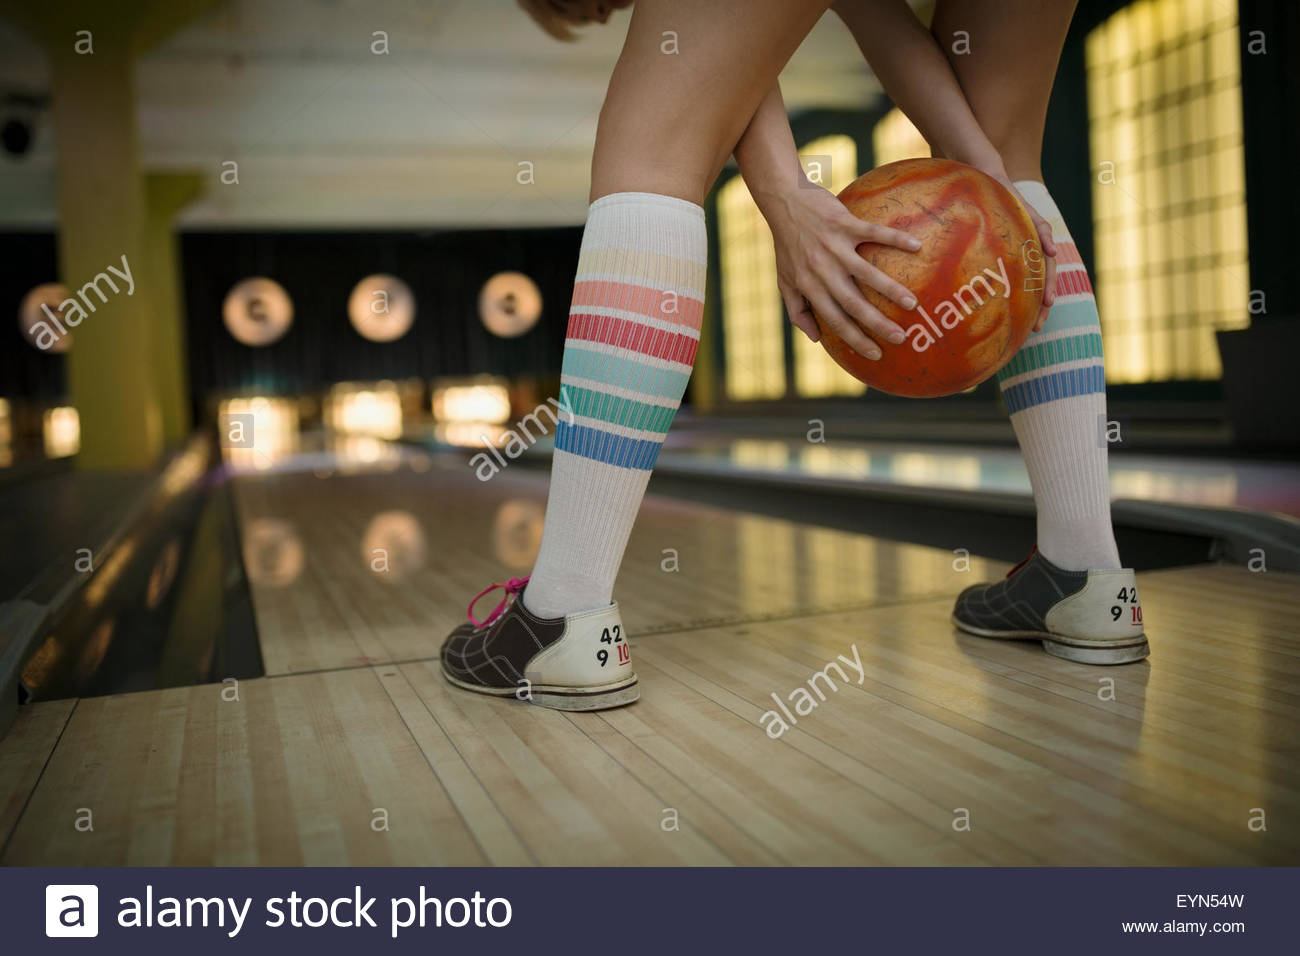 Young woman with knee-high socks bowling - Stock Image